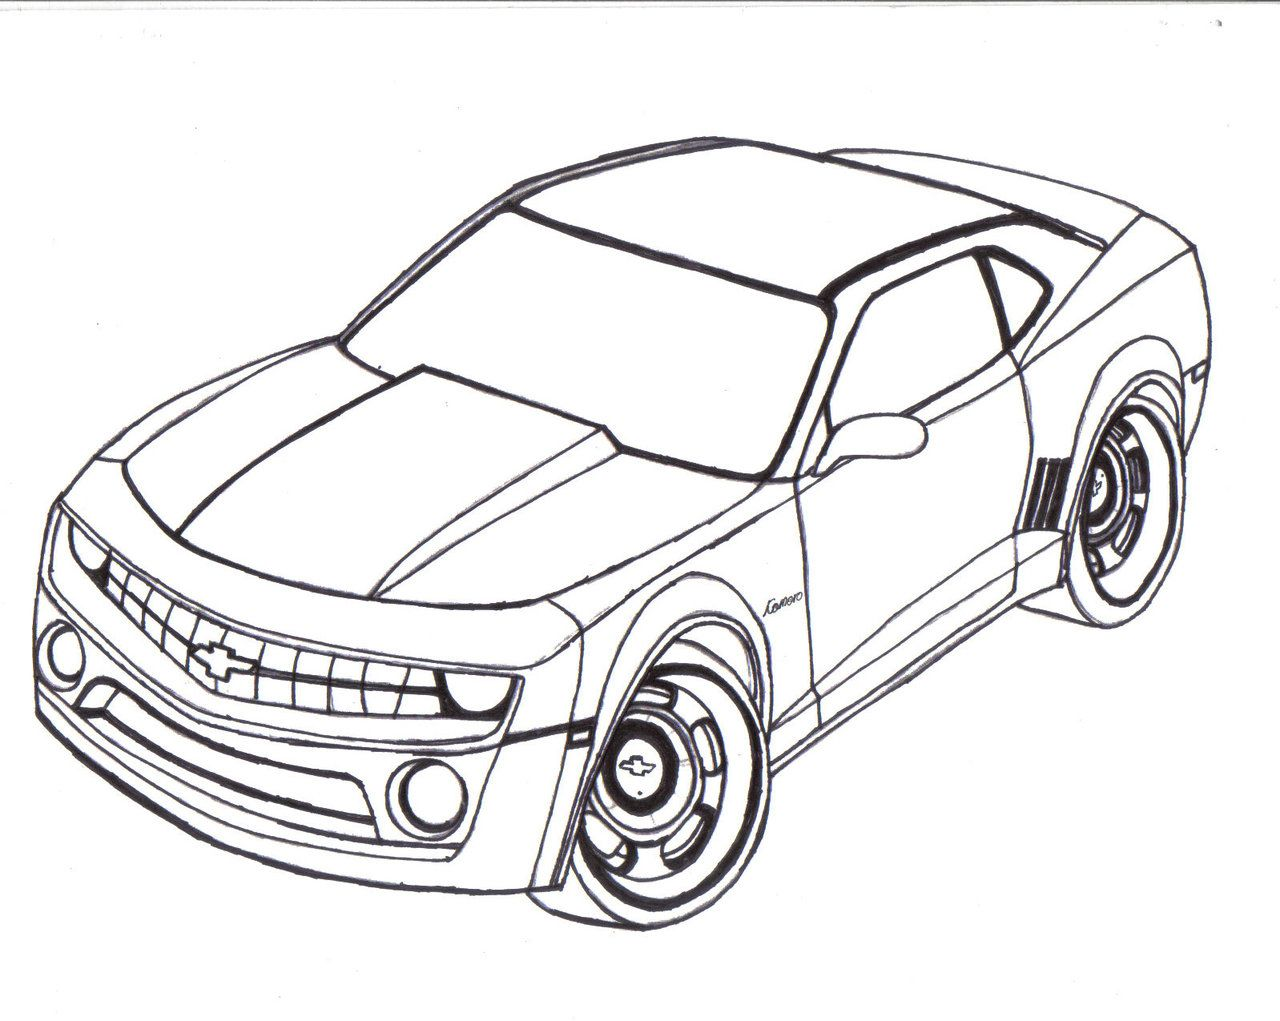 camaro black and white drawing